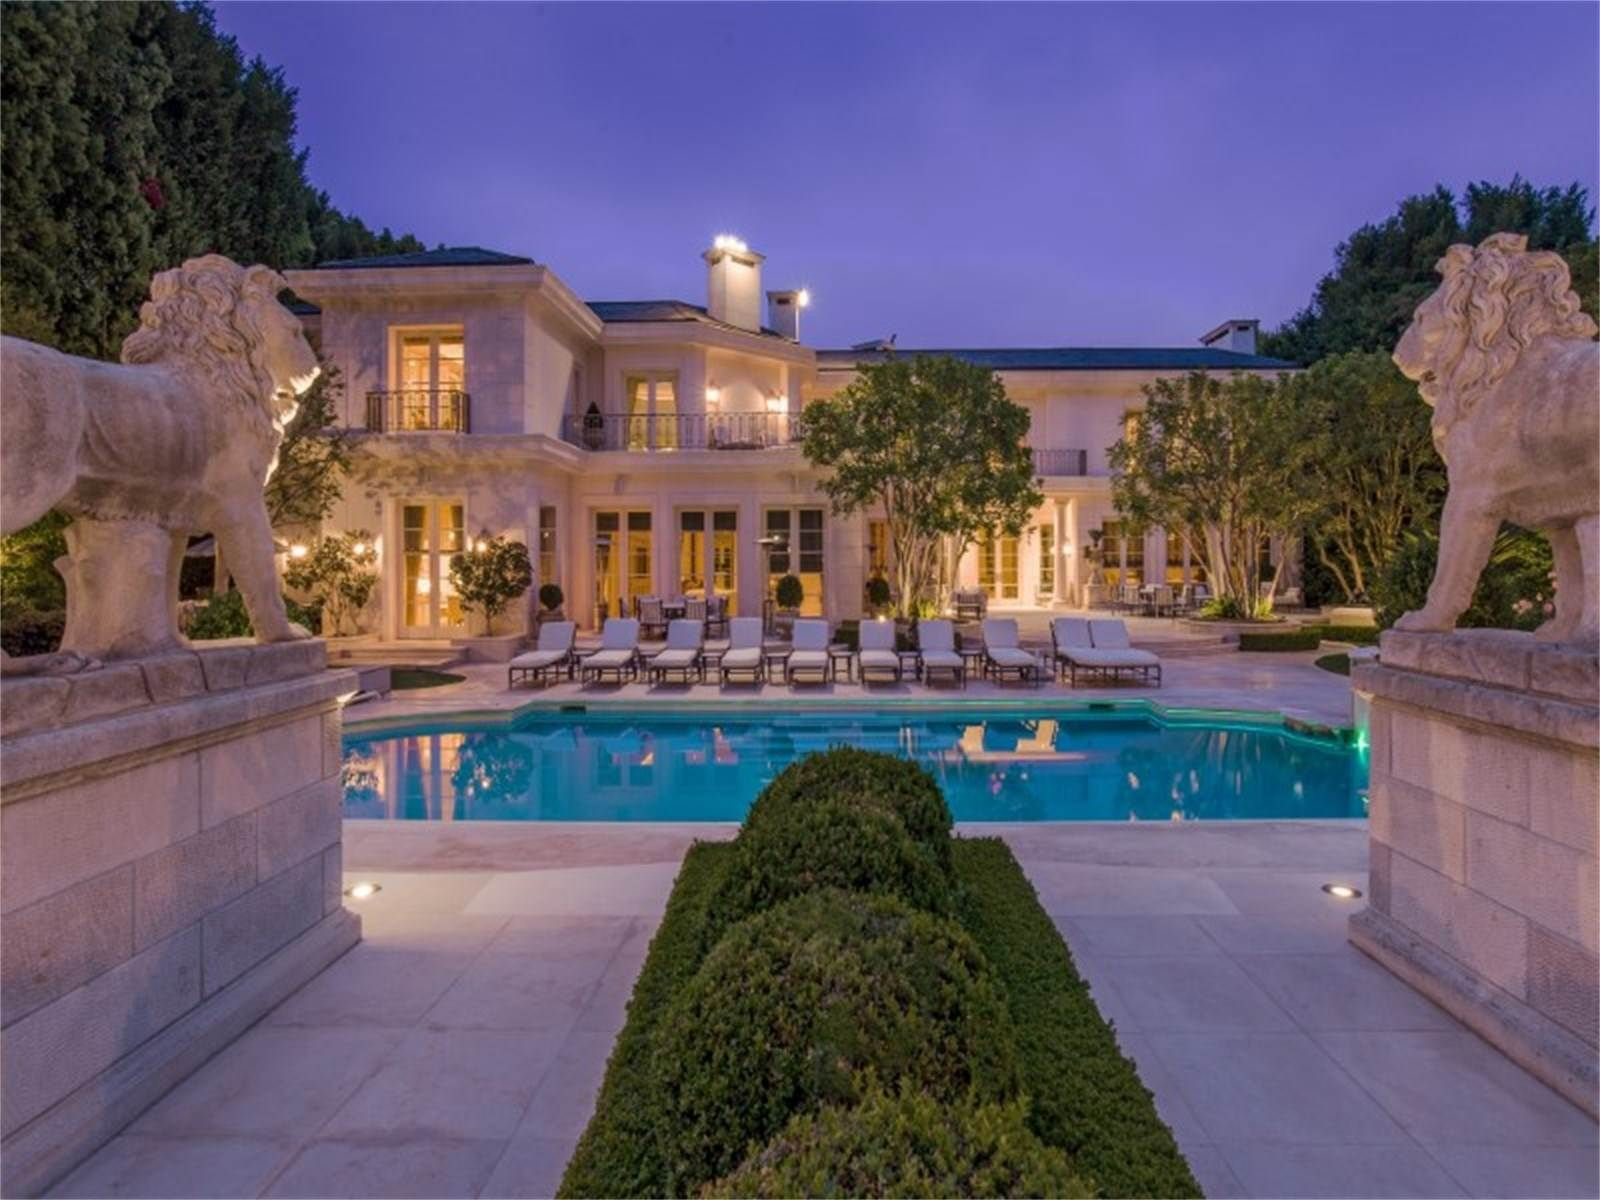 Exotic Homes view this luxury home located at 825 north whittier drive beverly